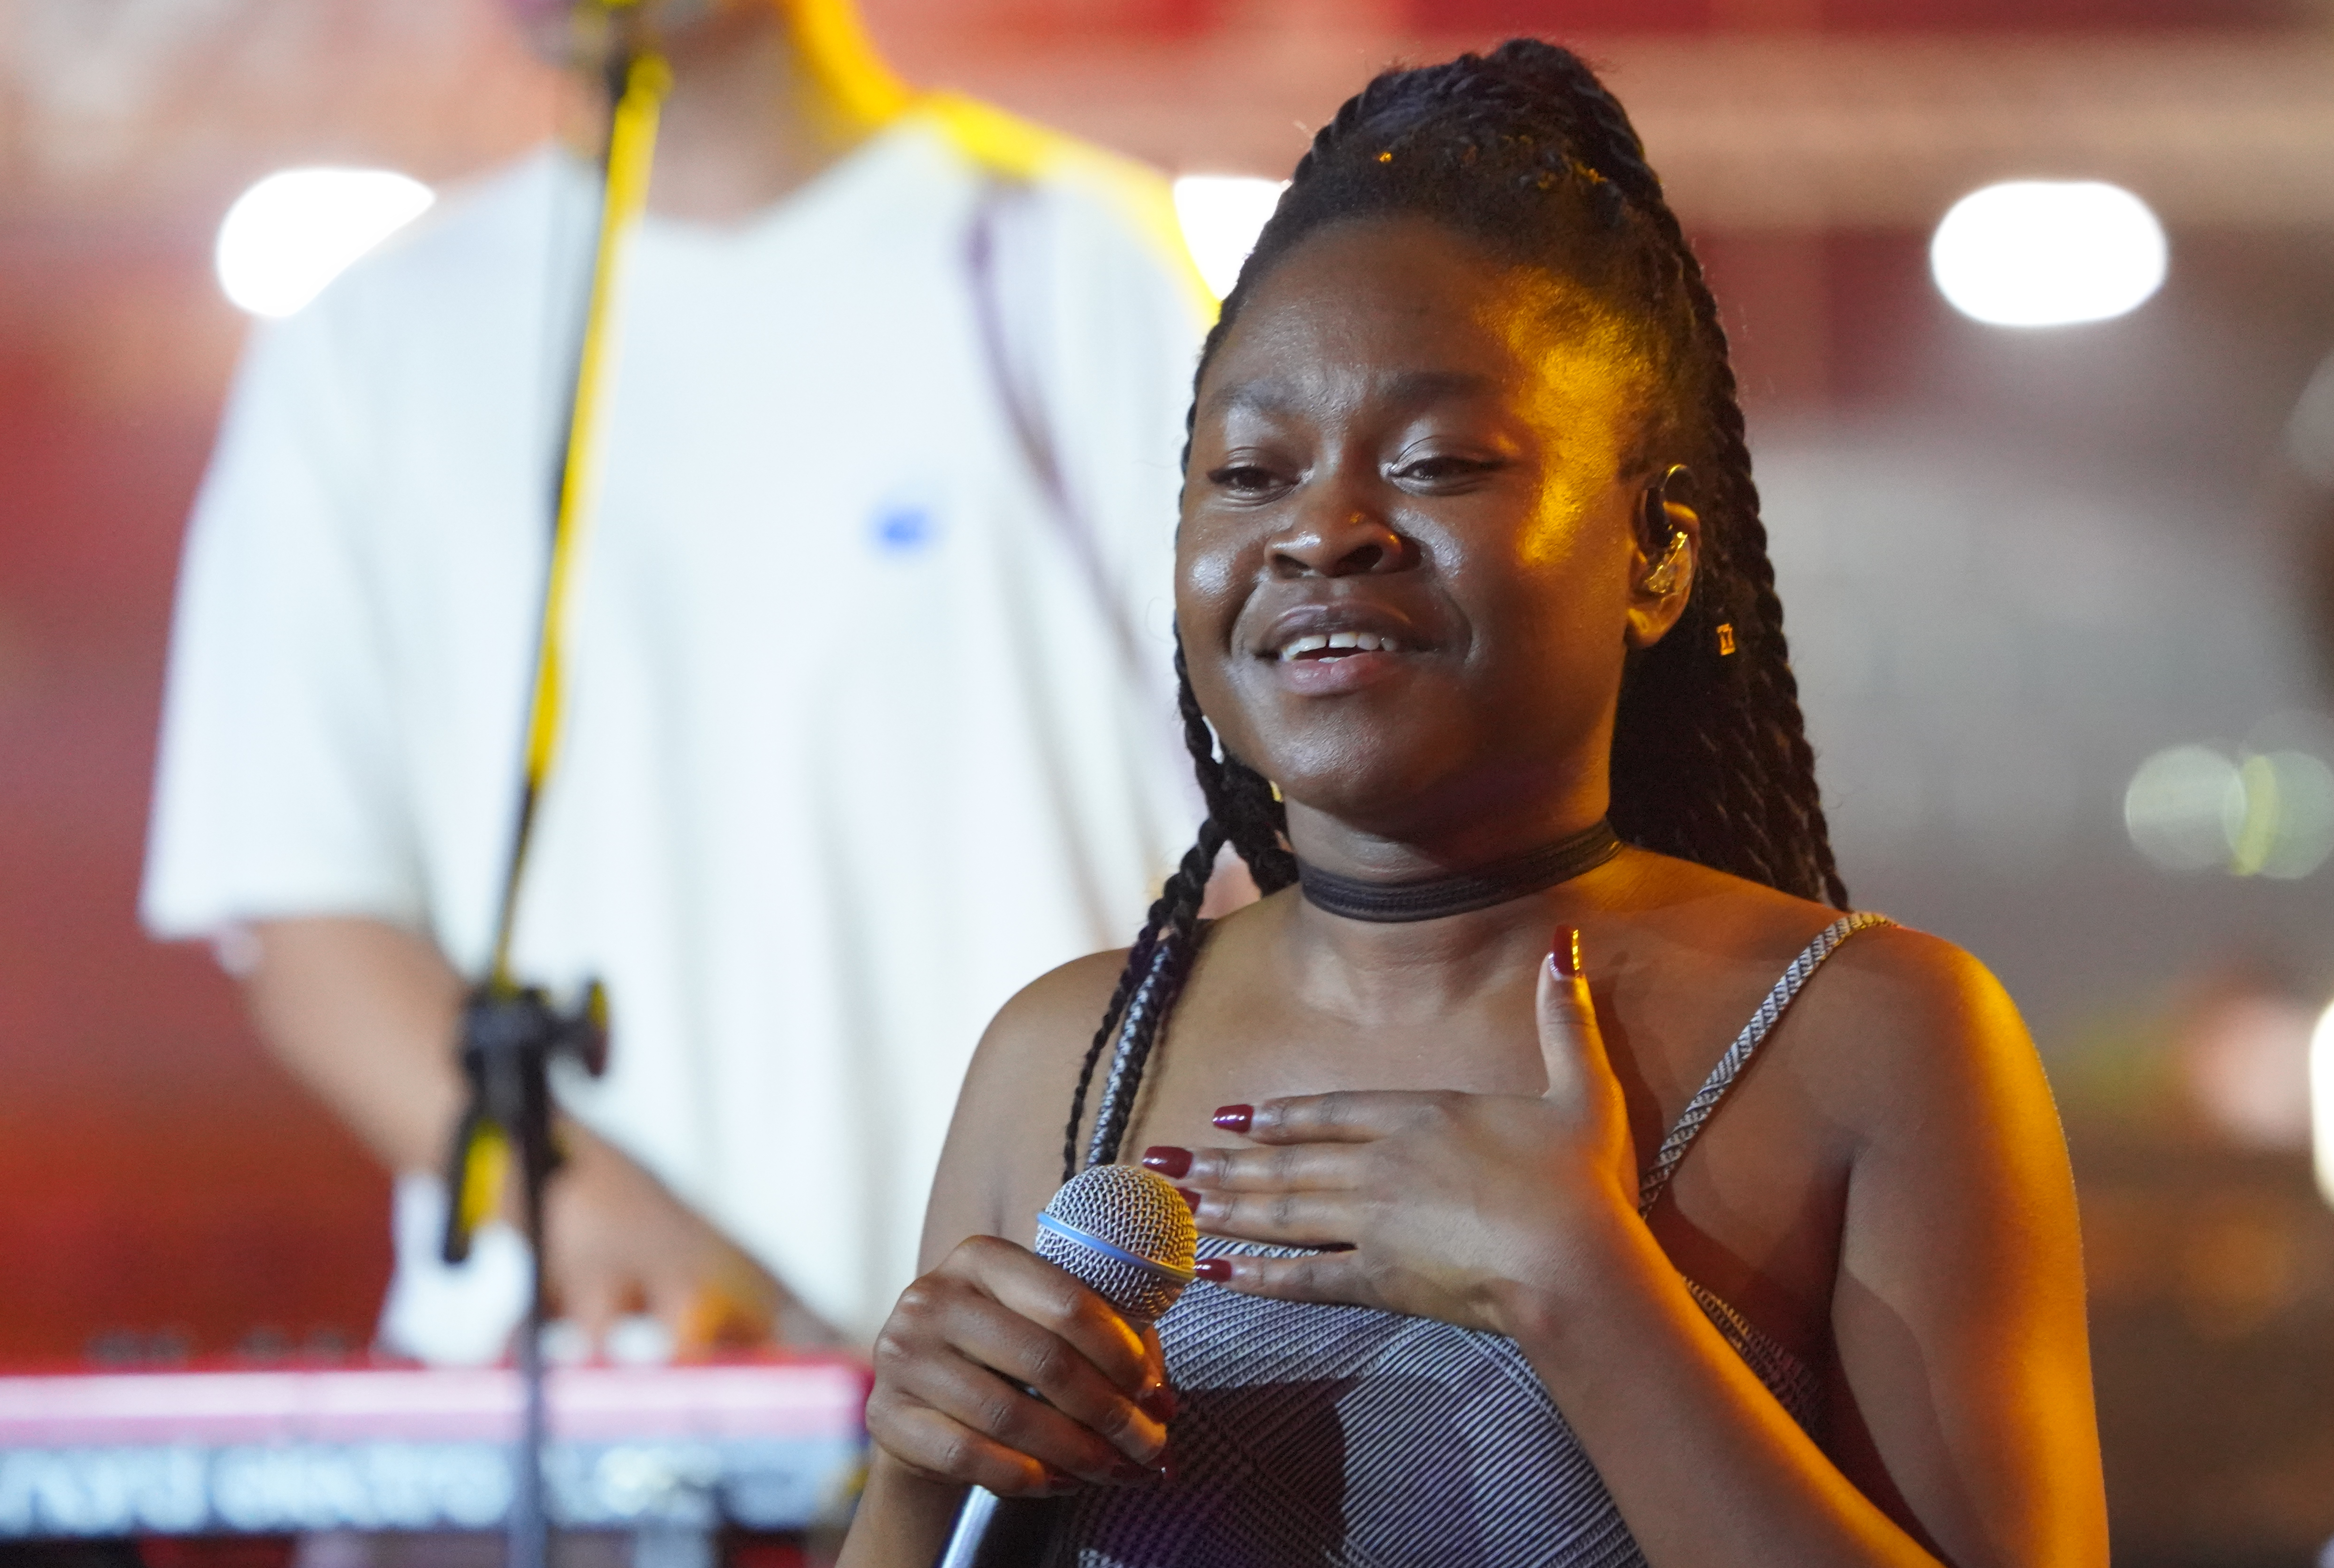 Sampa the Great performs onstage